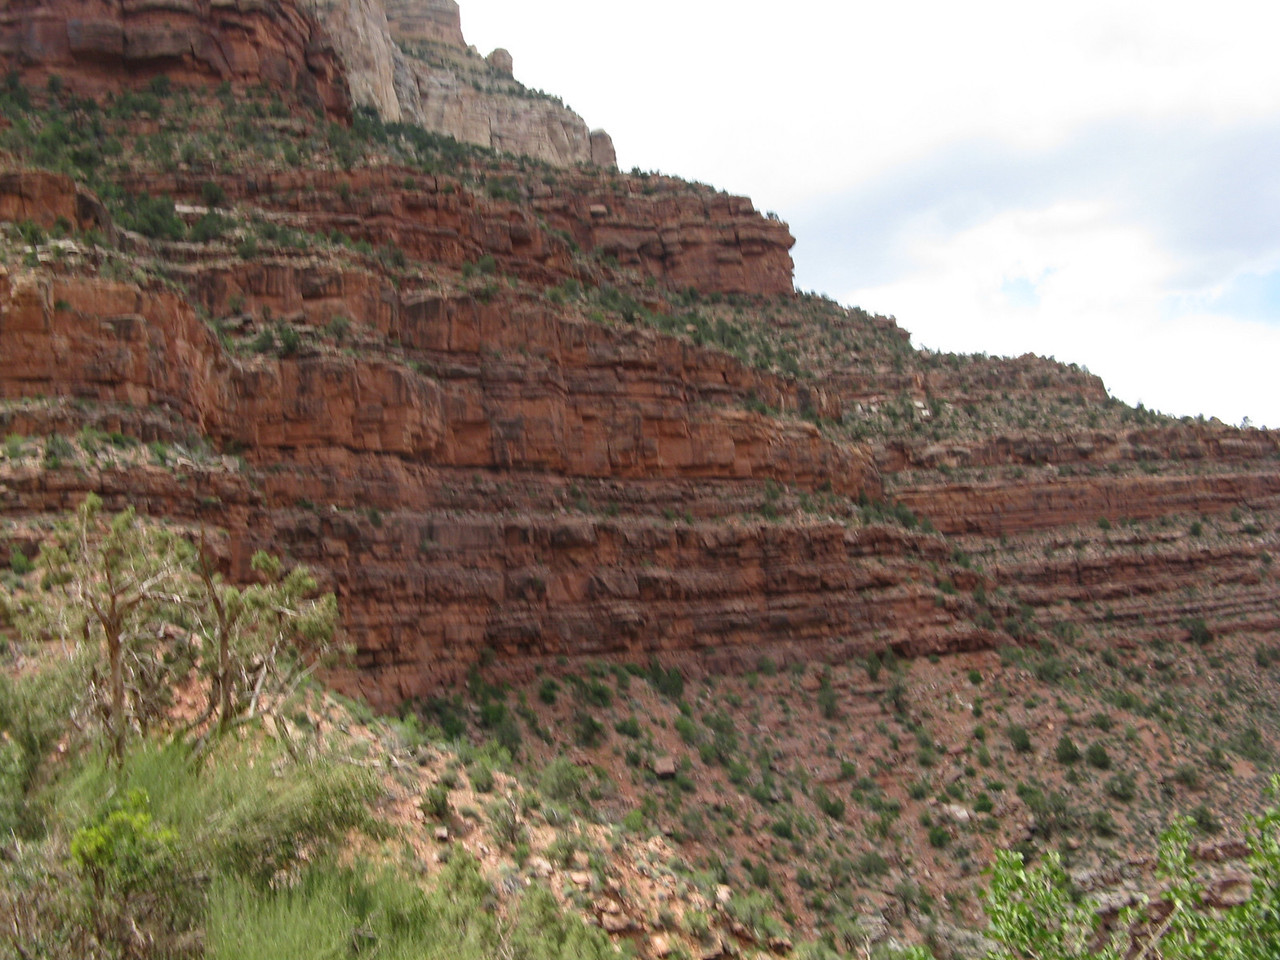 The evergreens and other plants dot the landscape in the Supai Group.